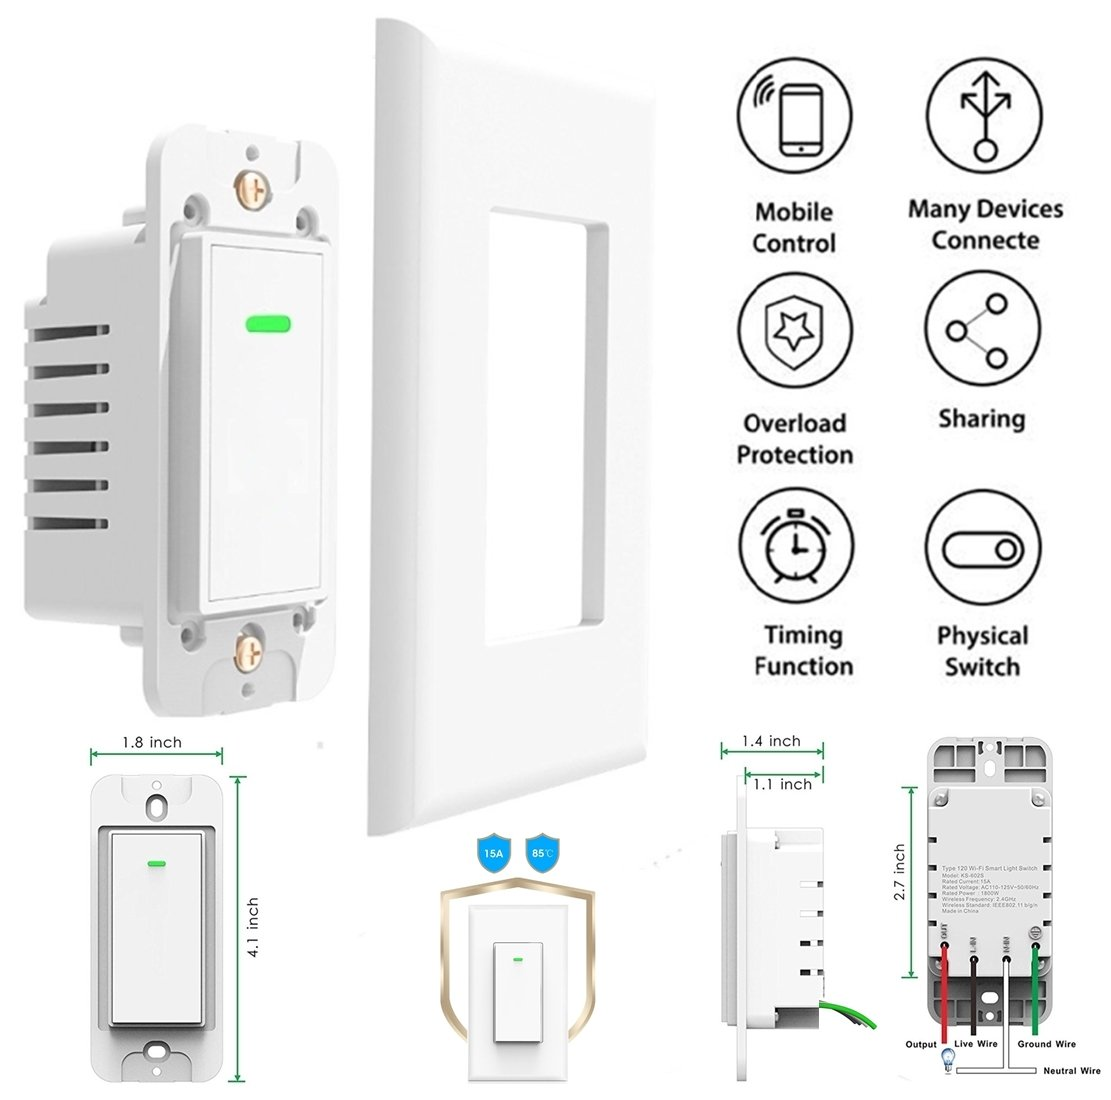 Smart Wifi Light Switch Wireless Phone Remote Control Wall On Off Circuit For Turn Any Home Appliances